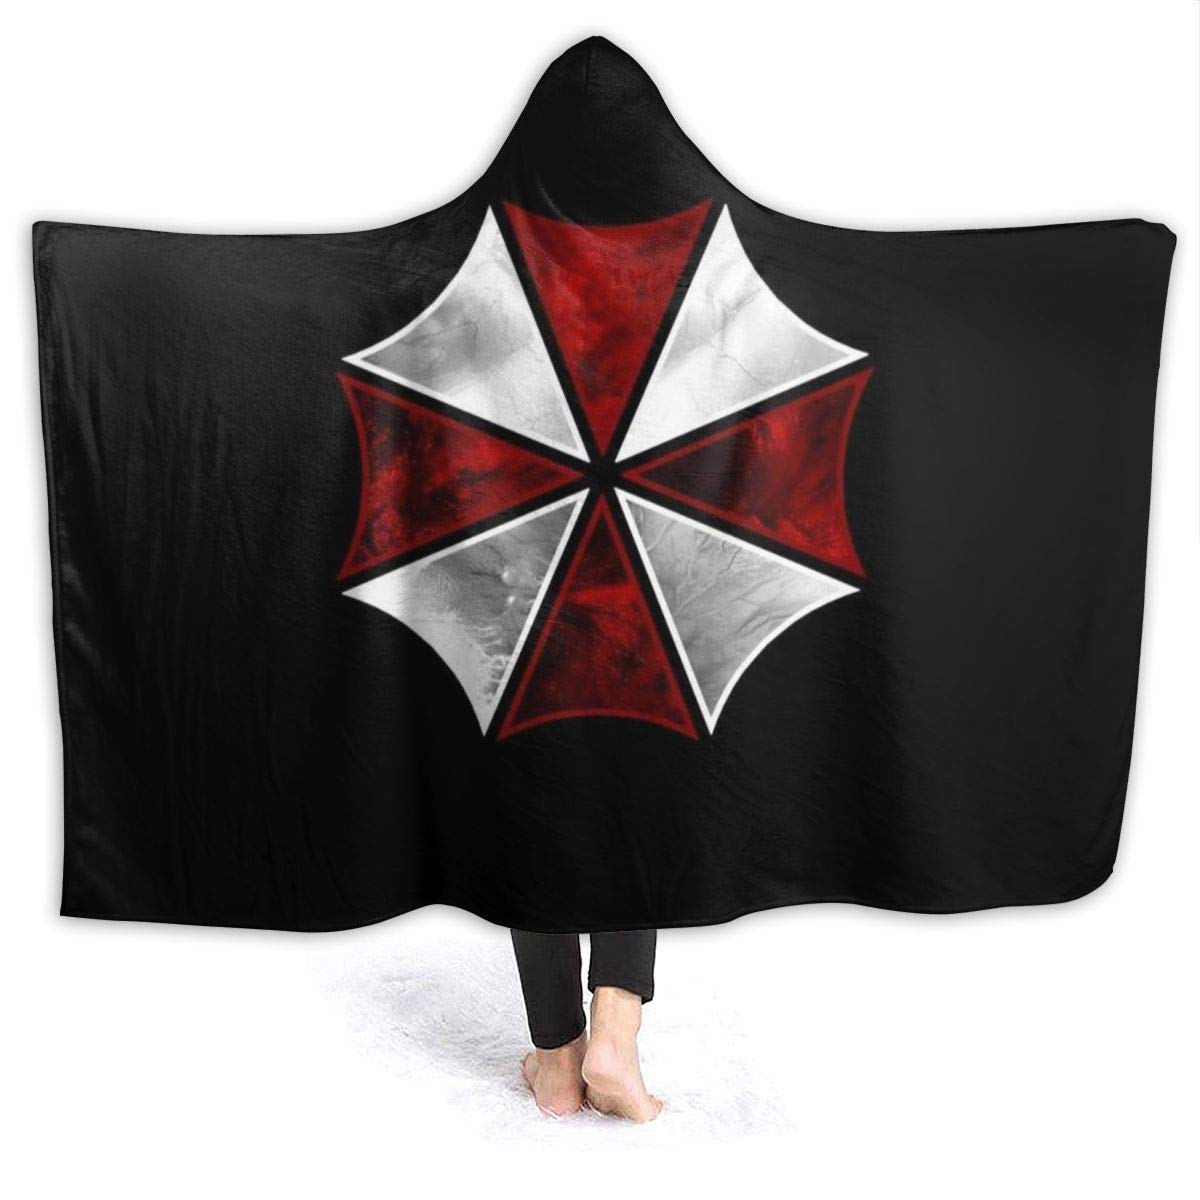 Blanket Hoodie Resi-dent Evil Hooded Throw Blanket Soft Cloak Shawl Wrap for Adult and Kids by COPEN